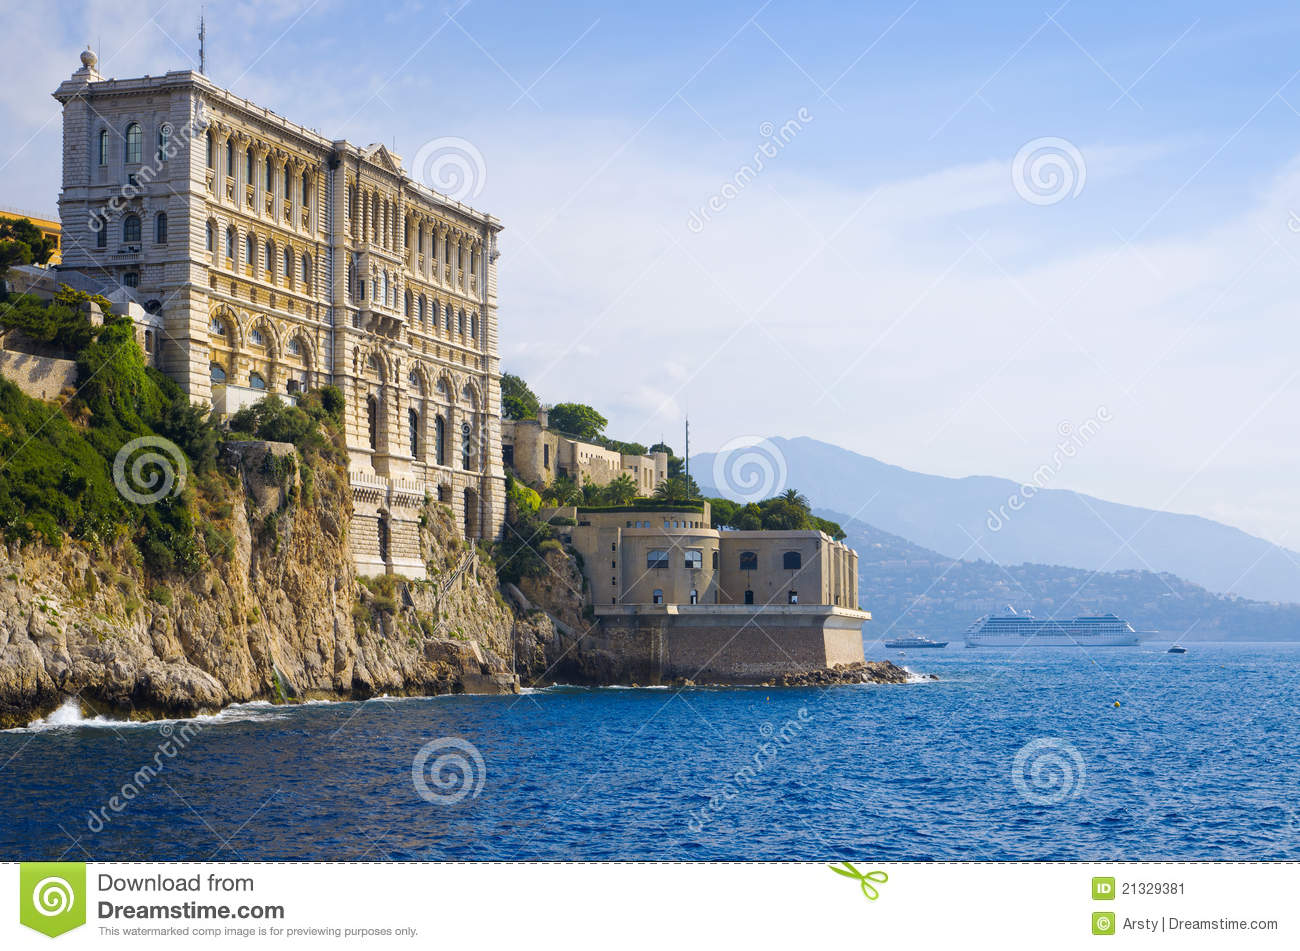 Index besides Saint Charles Church additionally Rome Mosaics Subway Metro Underground also Monaco palace as well Oceanographic Museum Octopus. on oceanographic museum monte carlo